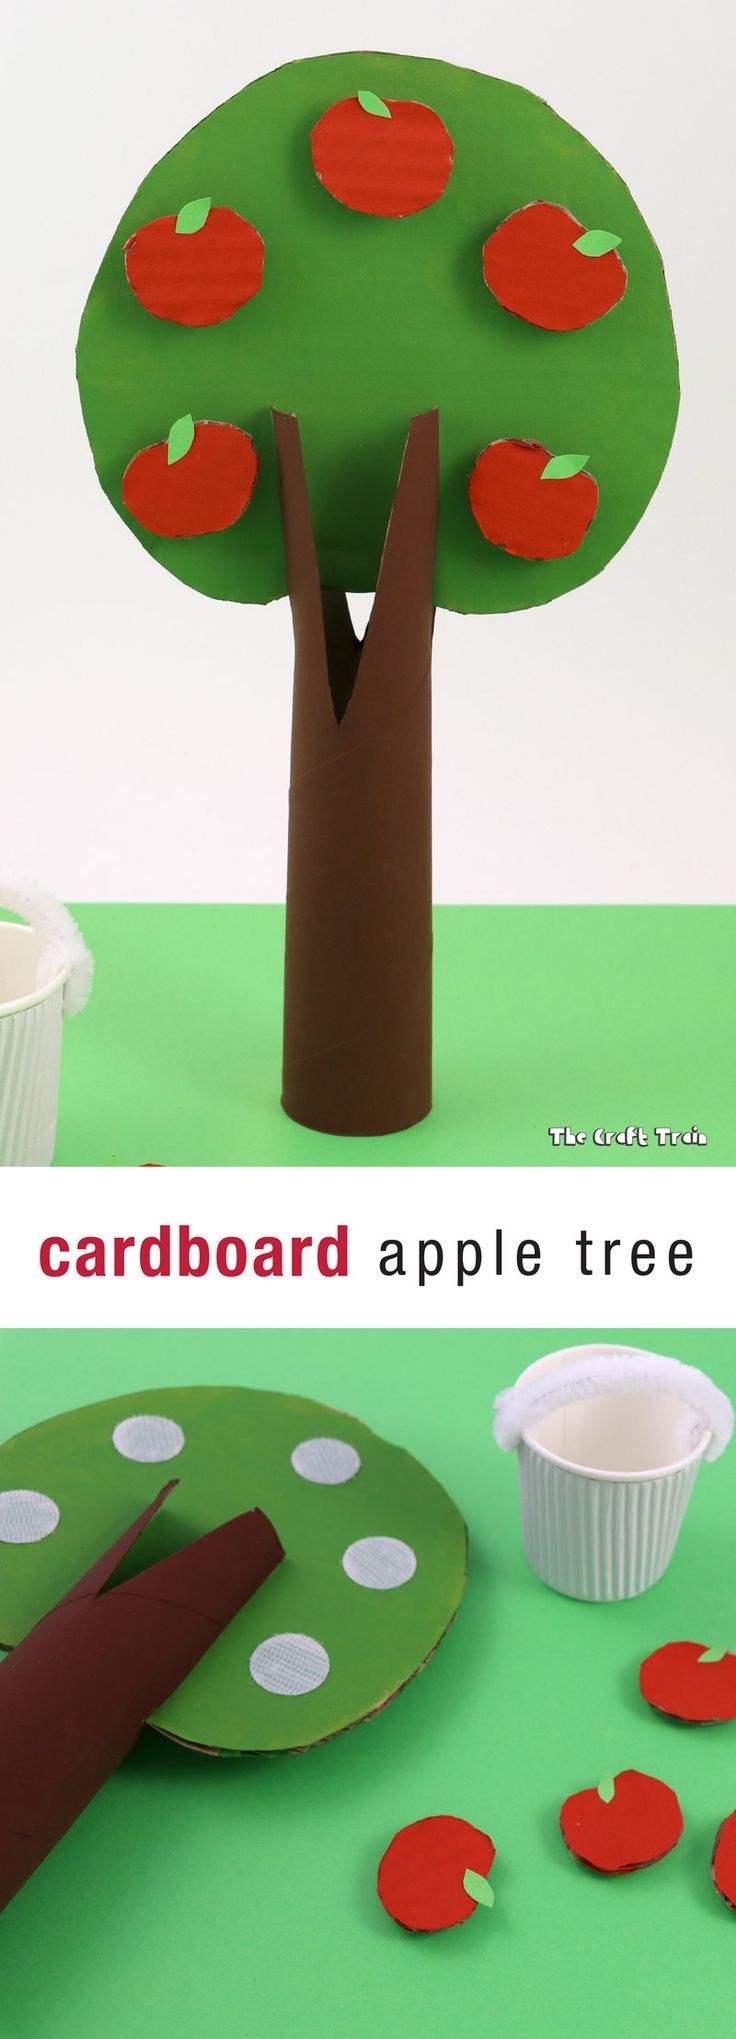 Make a cute cardboard apple tree with apples kids can pick